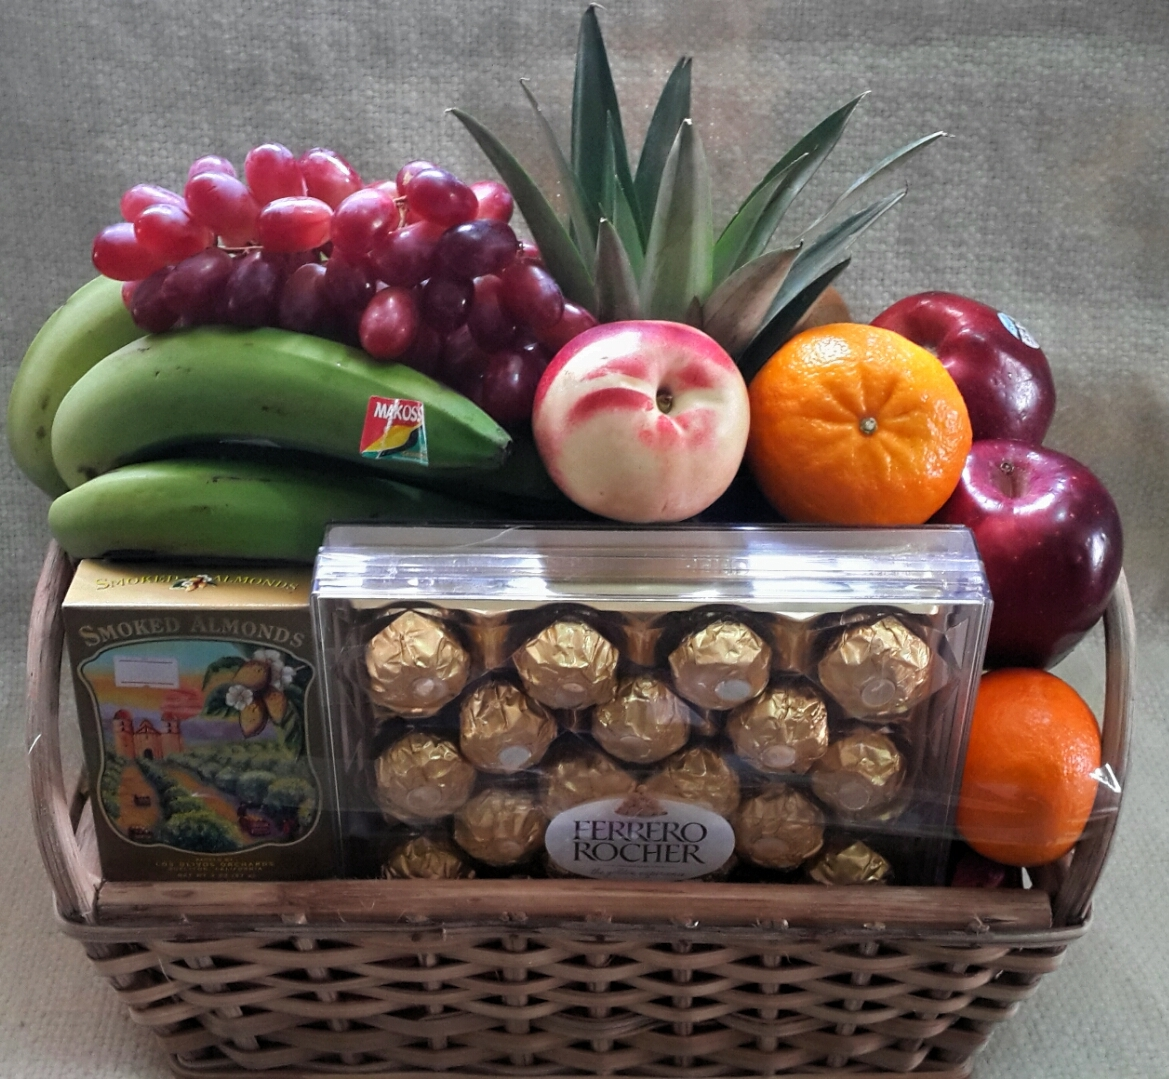 Fruit Basket,Chocolate & Nuts | flowerandballooncompany.com